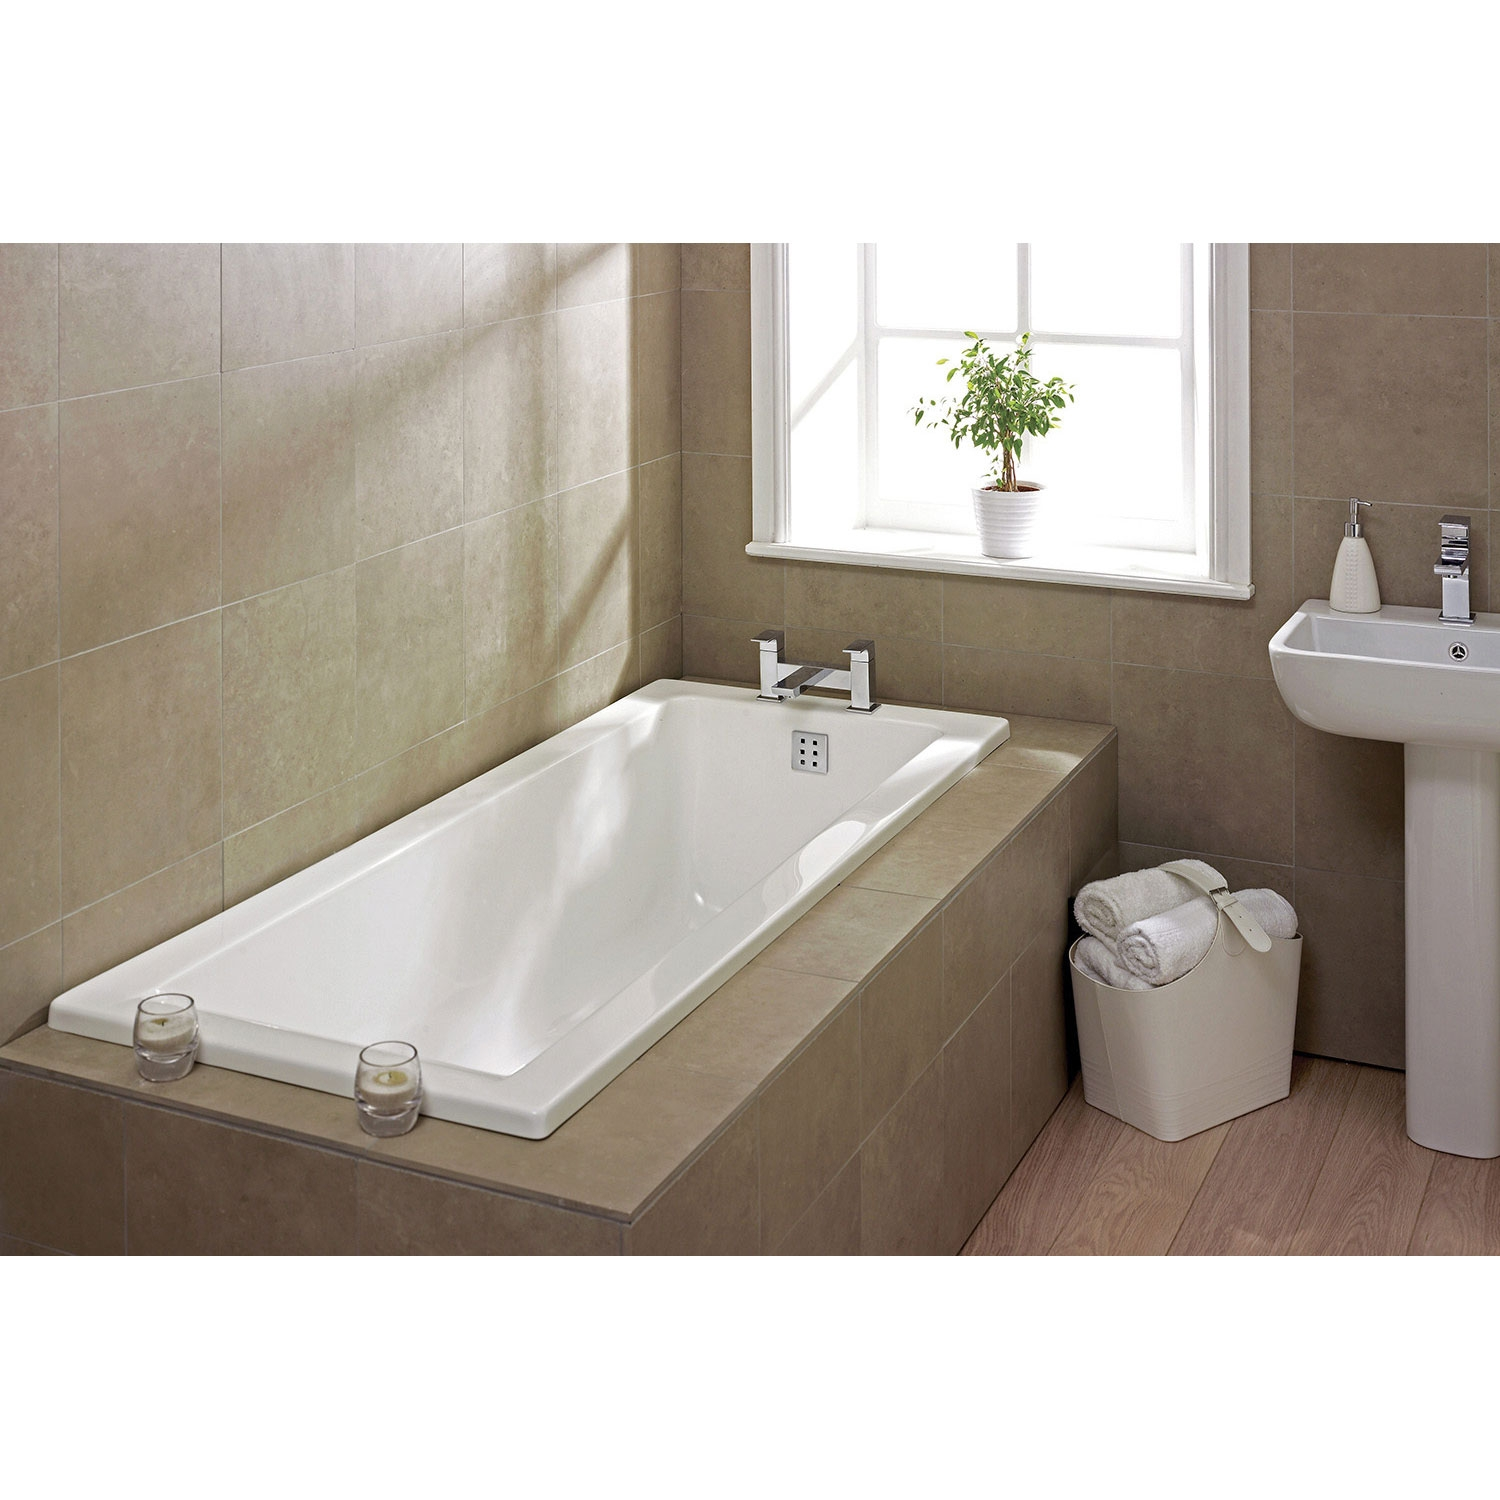 Verona Atlanta Single Ended Rectangular Bath 1700mm x 700mm - 0 Tap Hole